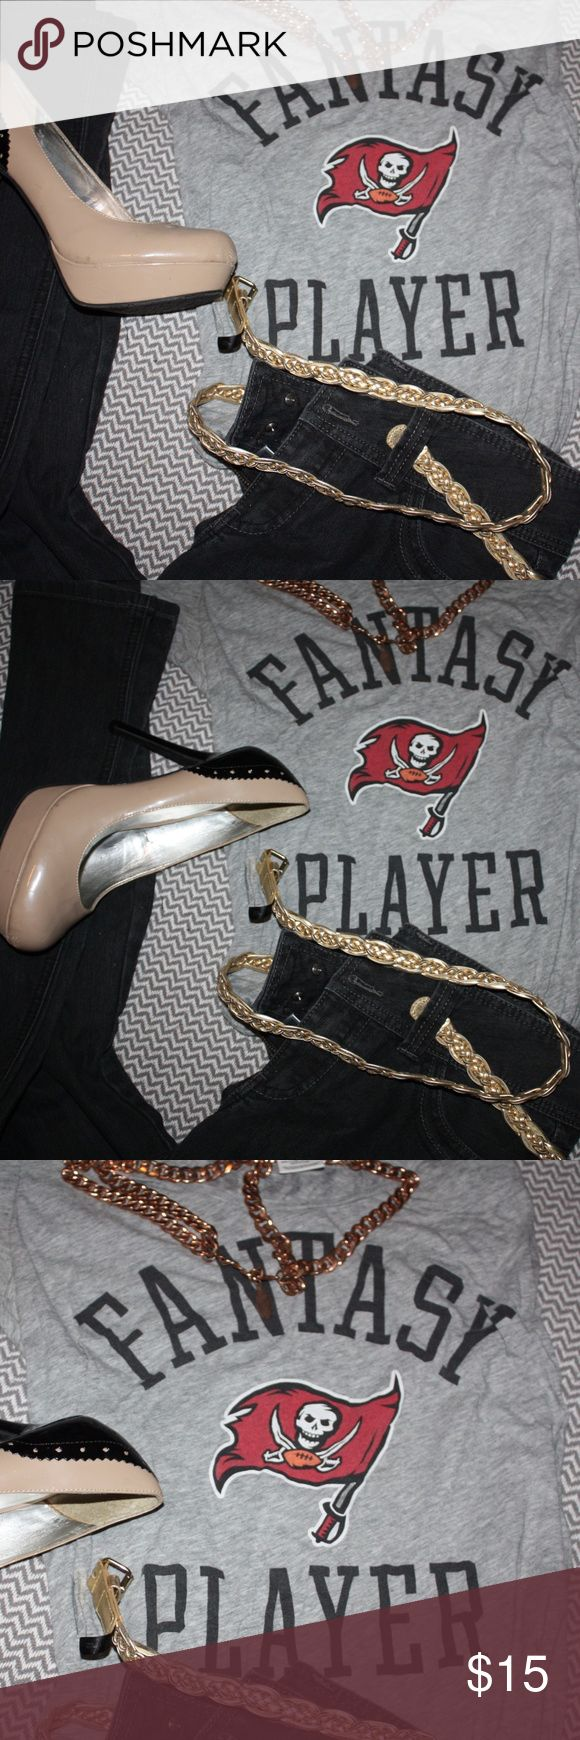 VS Pink Fantasy Player Tampa Bay Buccaneers Tee This fantasy player top is so cute! Wear to the next Buccaneers game with the boys or with jeans and heels shopping with the girls. I love the Pink line and if you or your partner are a Buccs fan, this is the tee for you! PINK Victoria's Secret Tops Tees - Short Sleeve